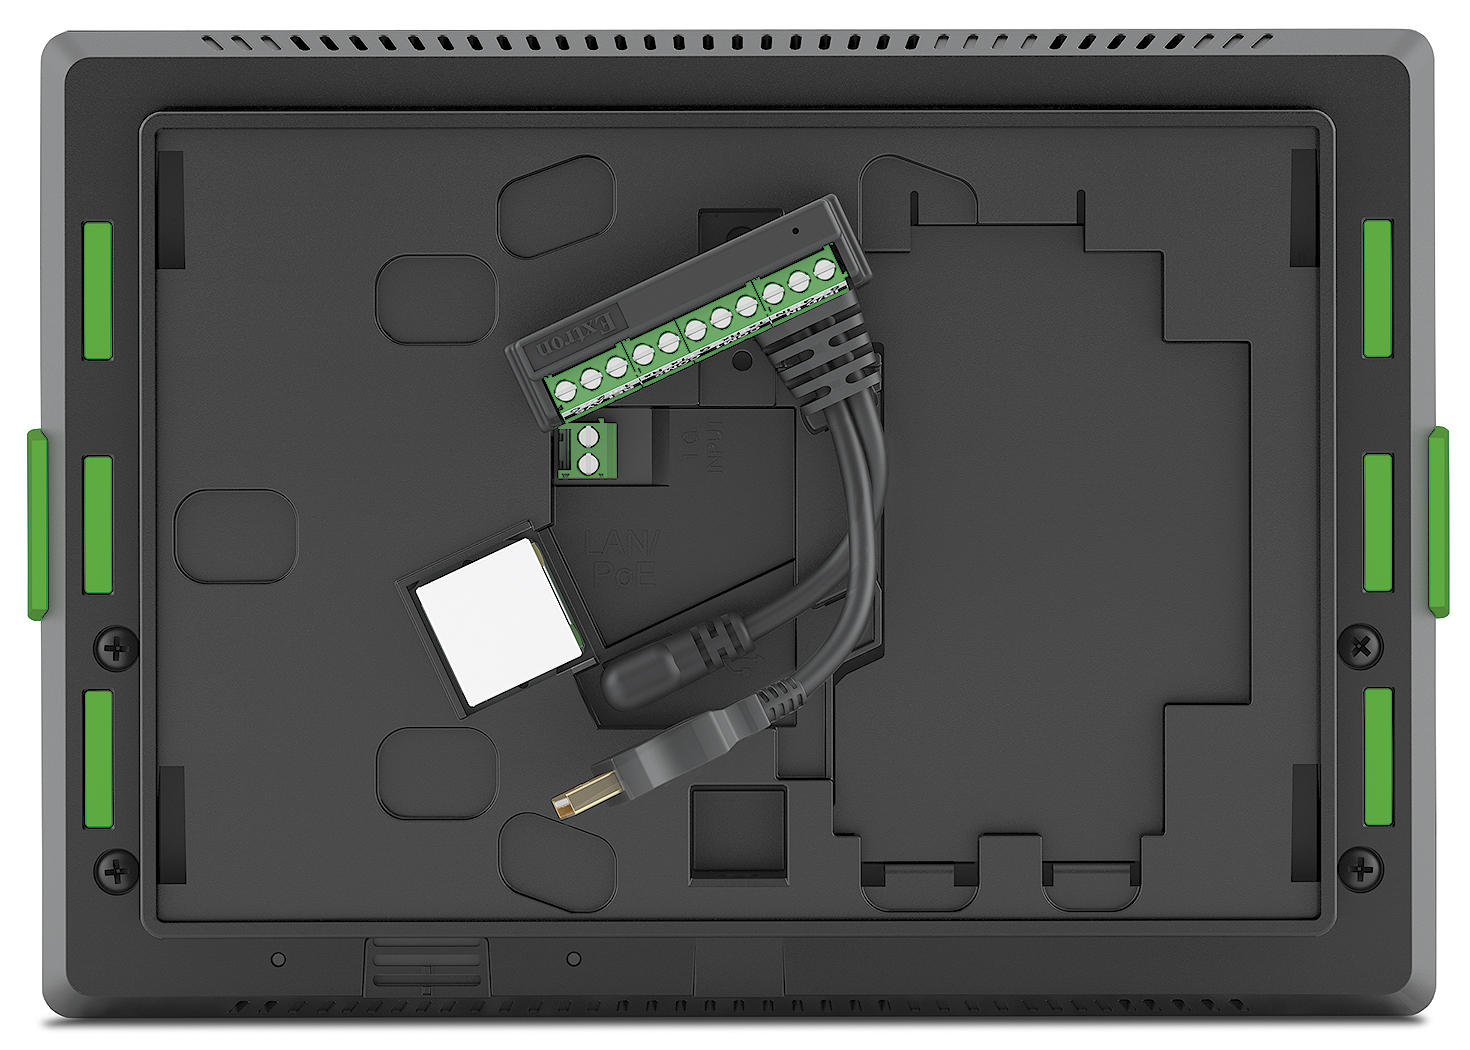 TLP Pro 725M - Back with TLCA 1 TouchLink Control Adapter